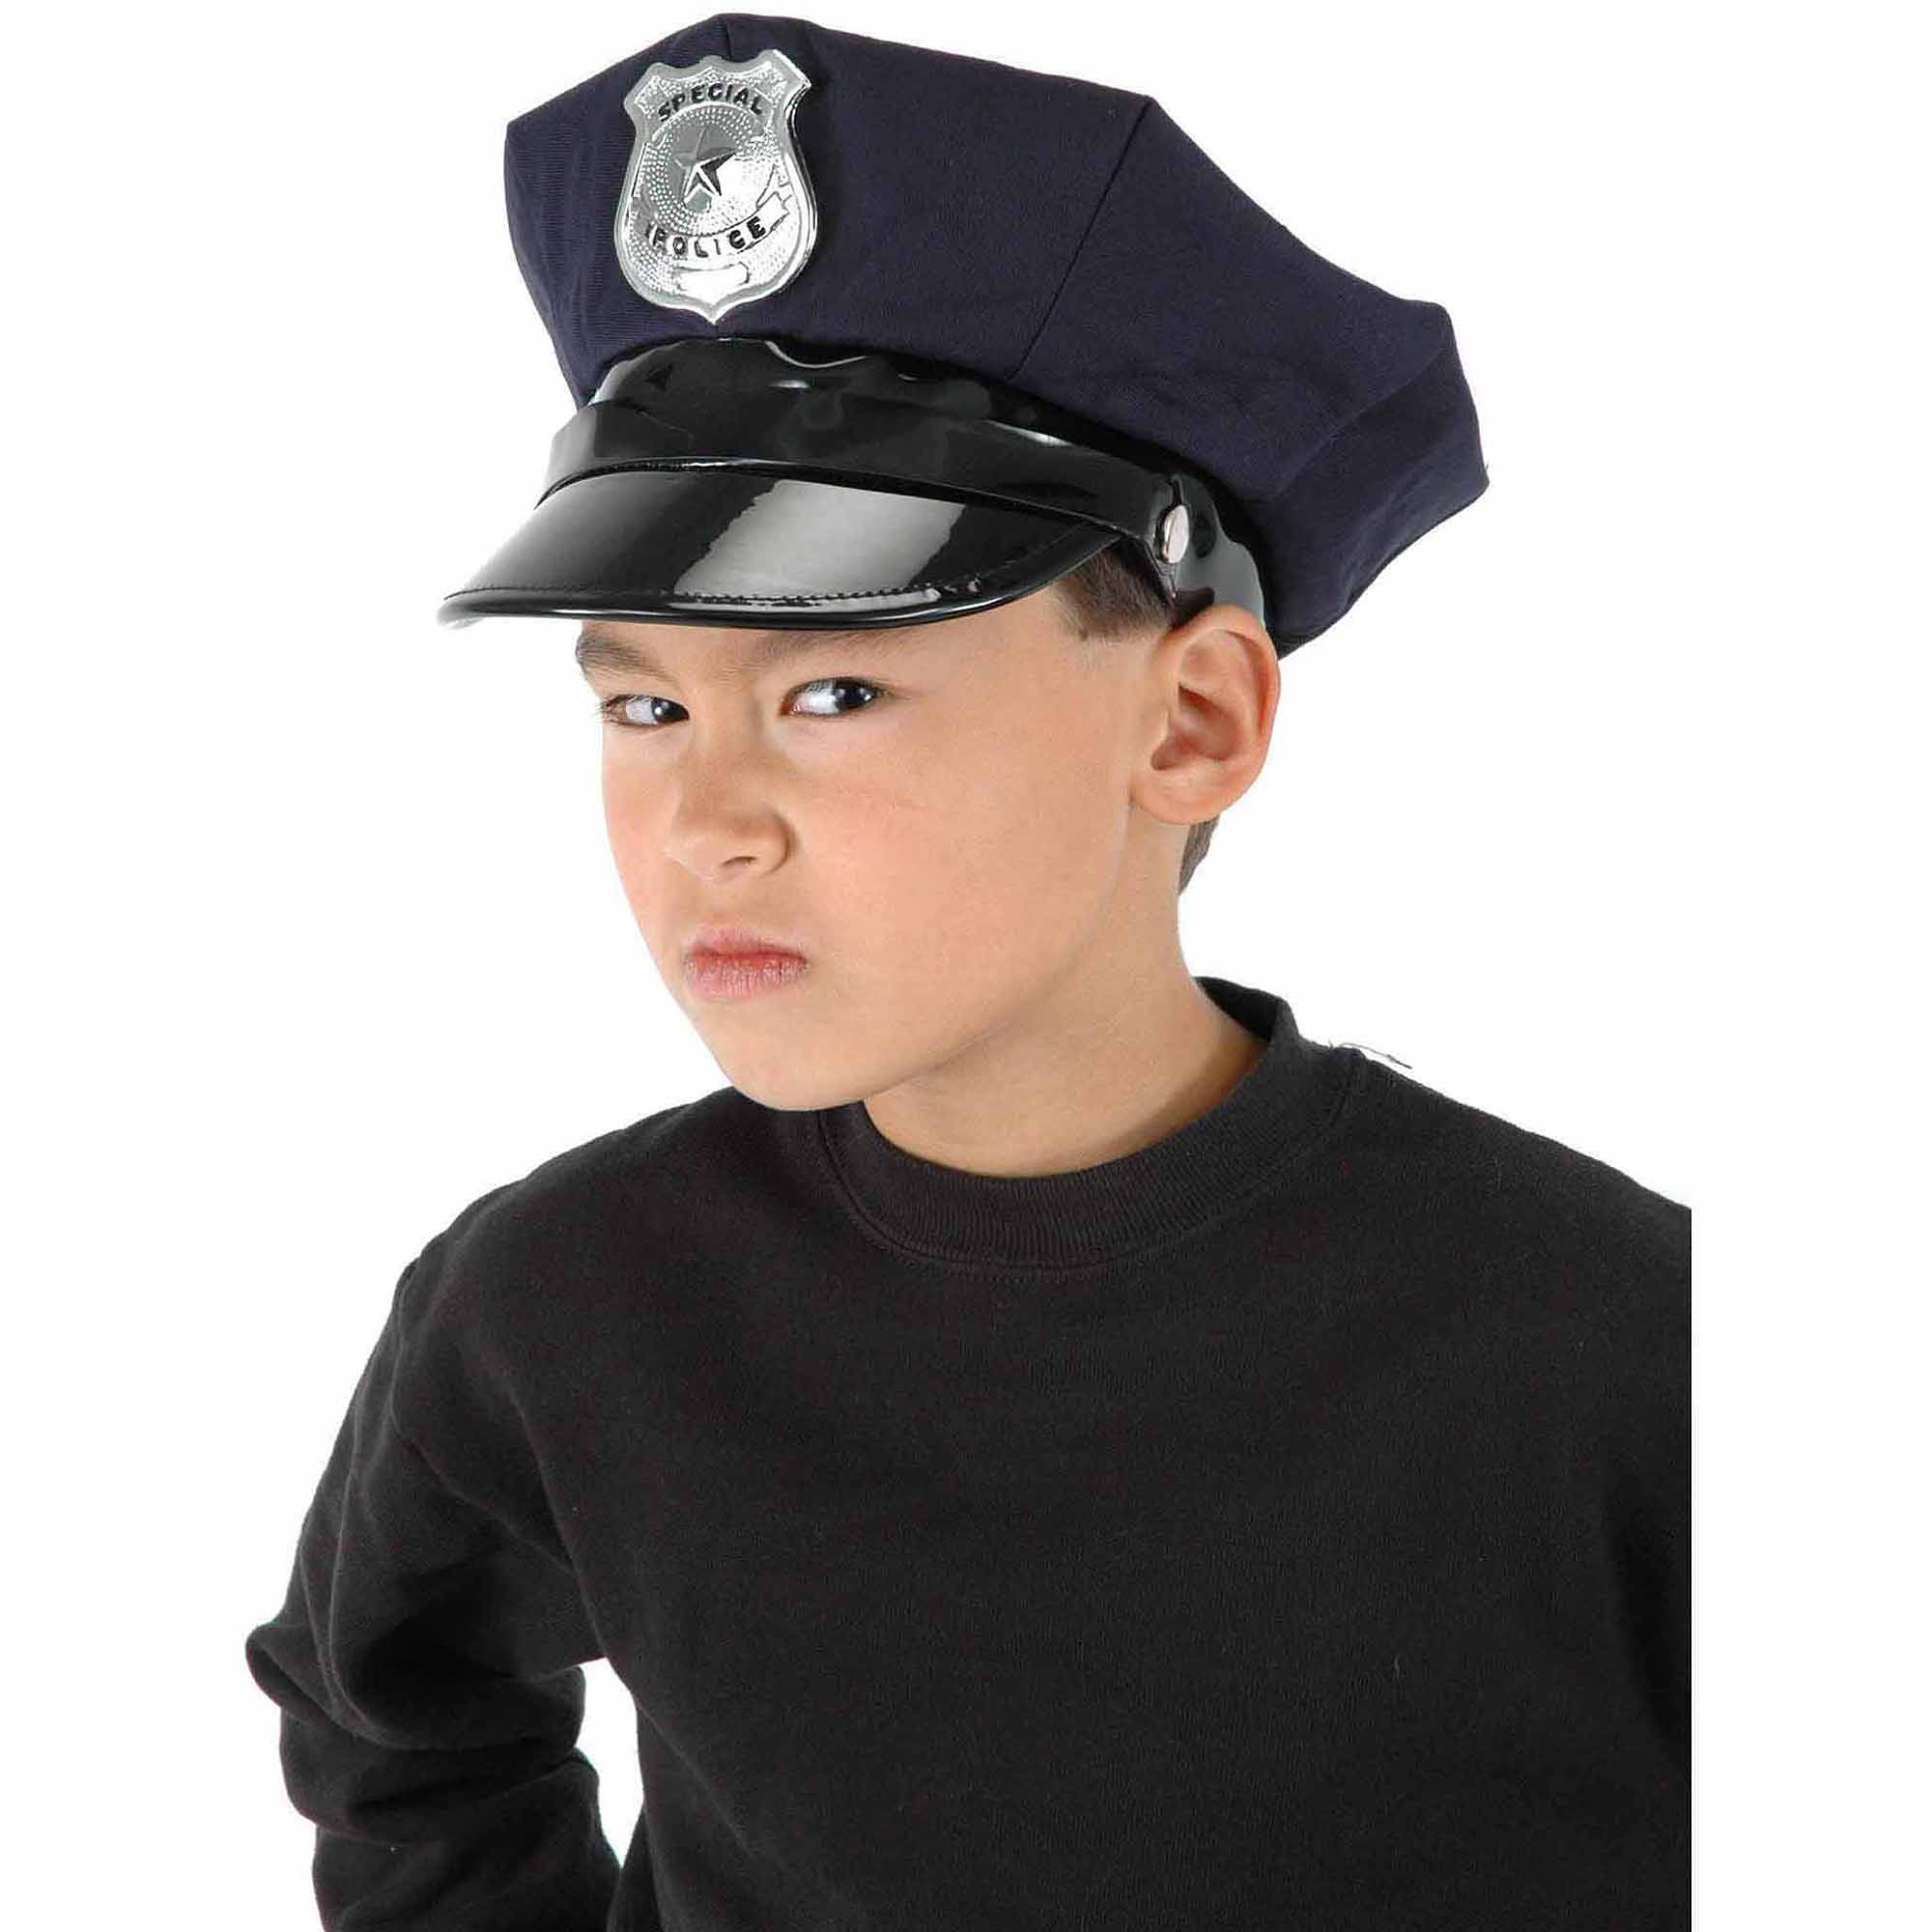 Police Chief Child Halloween Costume Accessory by Generic